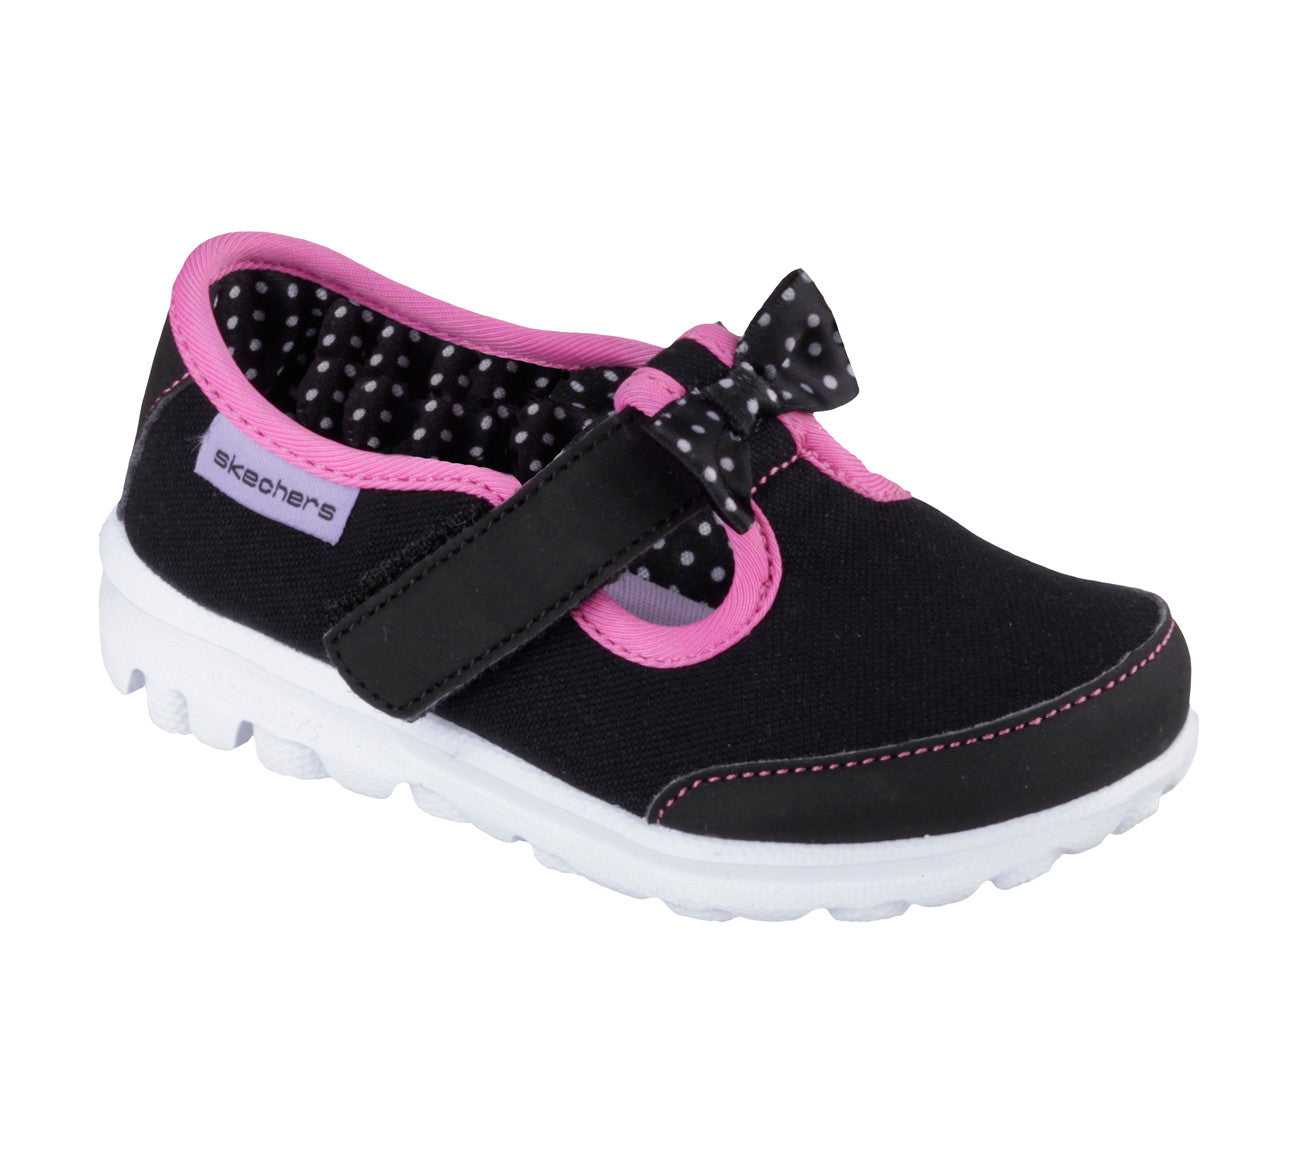 a26a85472ee3 Skechers Infants GO Walk Bitty Bow Black Pink Famous Rock Shop Newcastle  NSW Australia ...